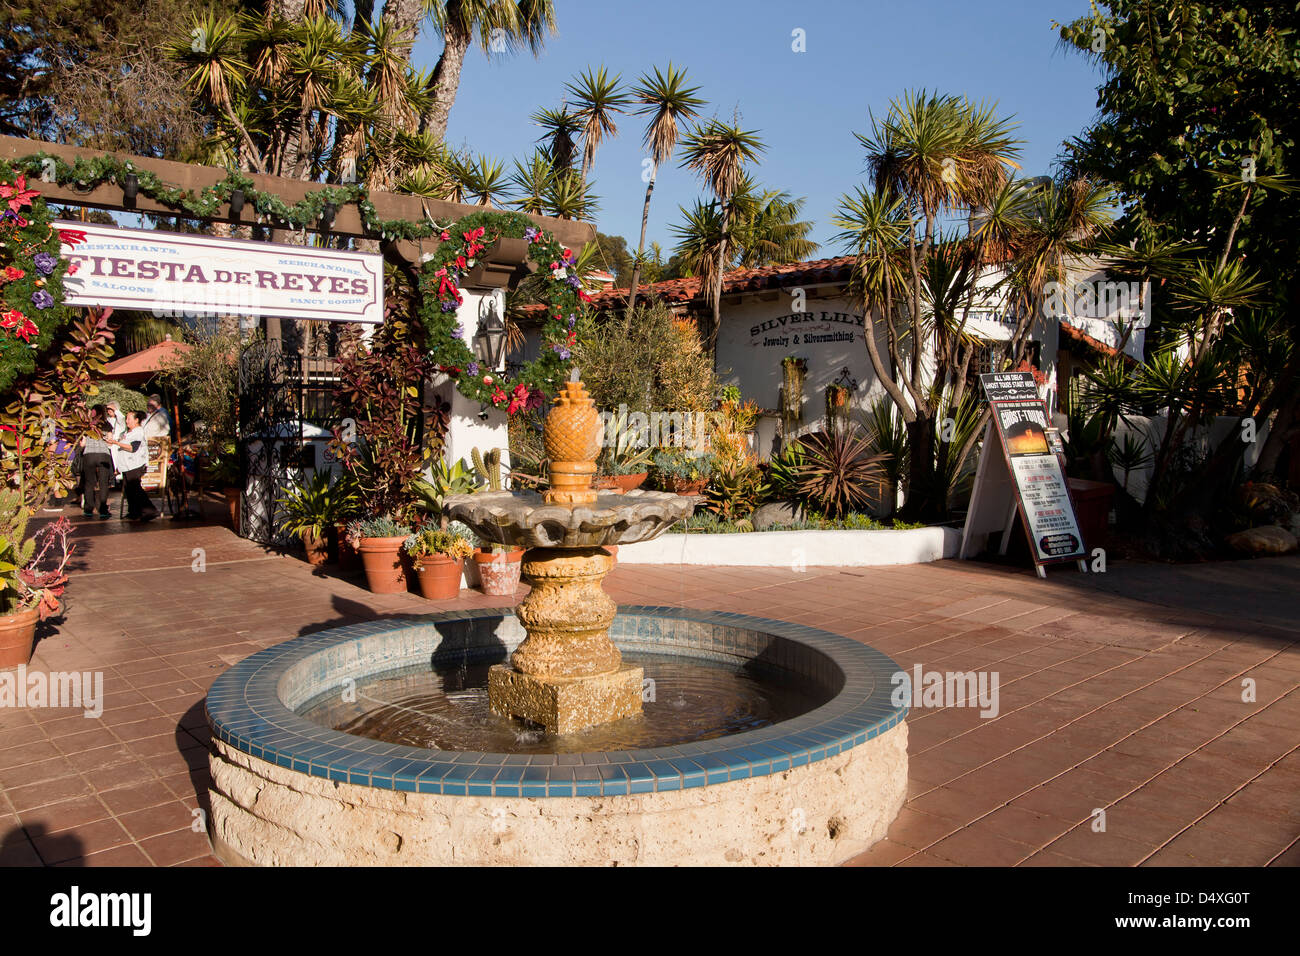 fountain in front of the mexican Restaurant Fiesta de Reyes, Old Town State Park, San Diego, California, - Stock Image